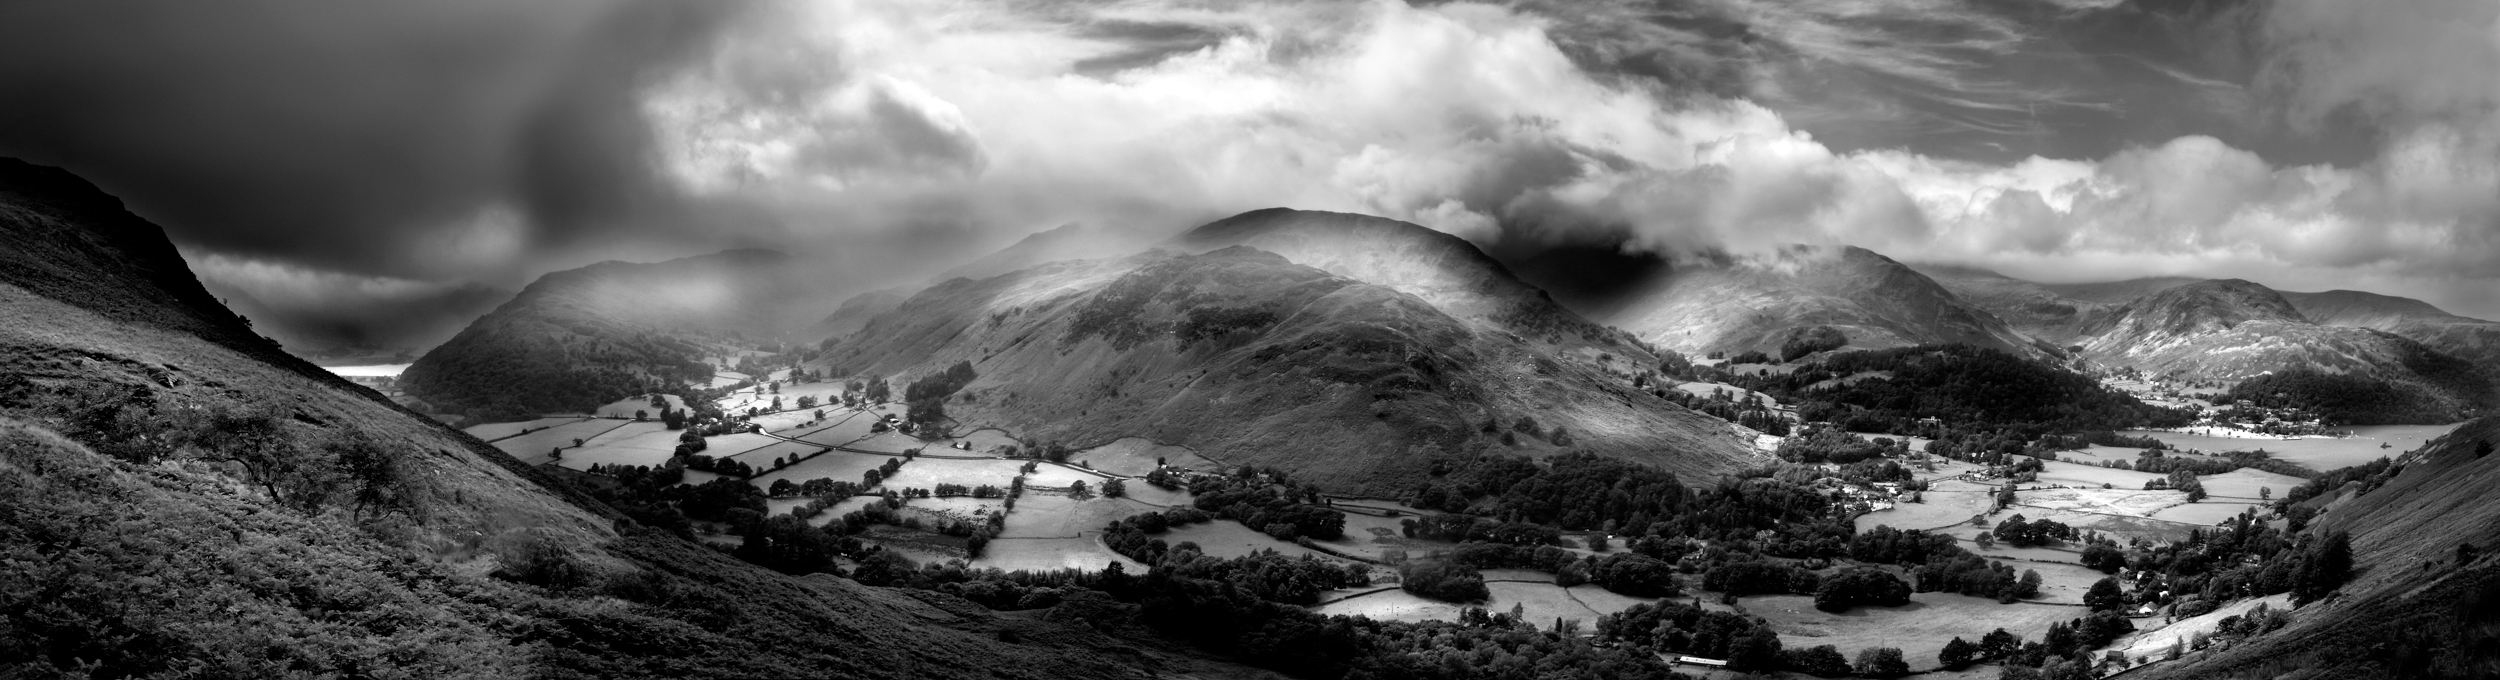 Paul Craig Interior Photographer Personal Work Lake District panorama